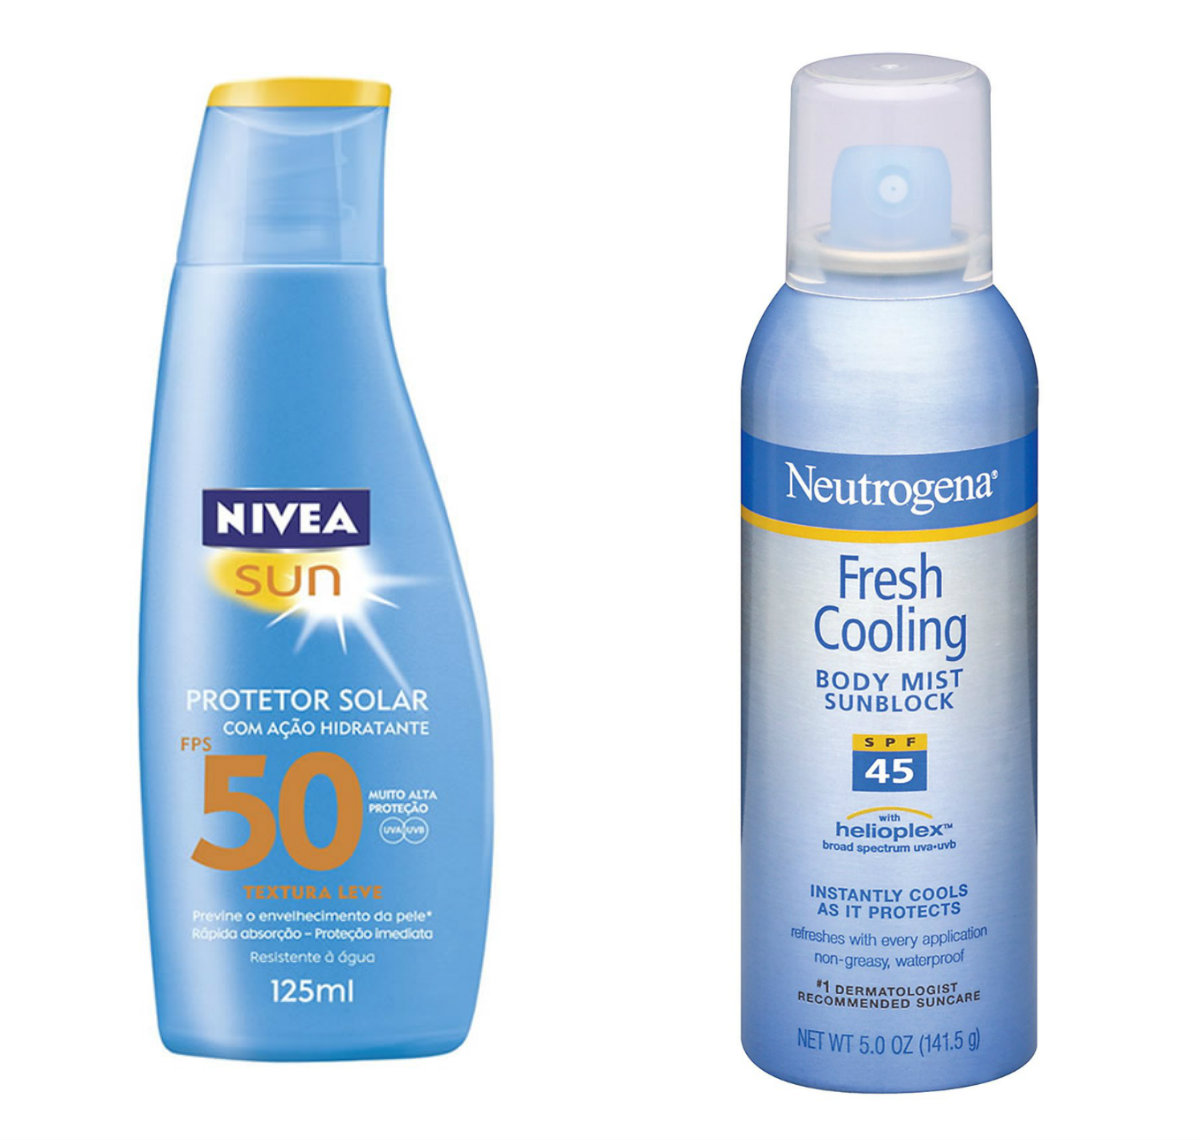 Nivea Sun FPS 50 e Spray Fresh Cooling da Neutrogena